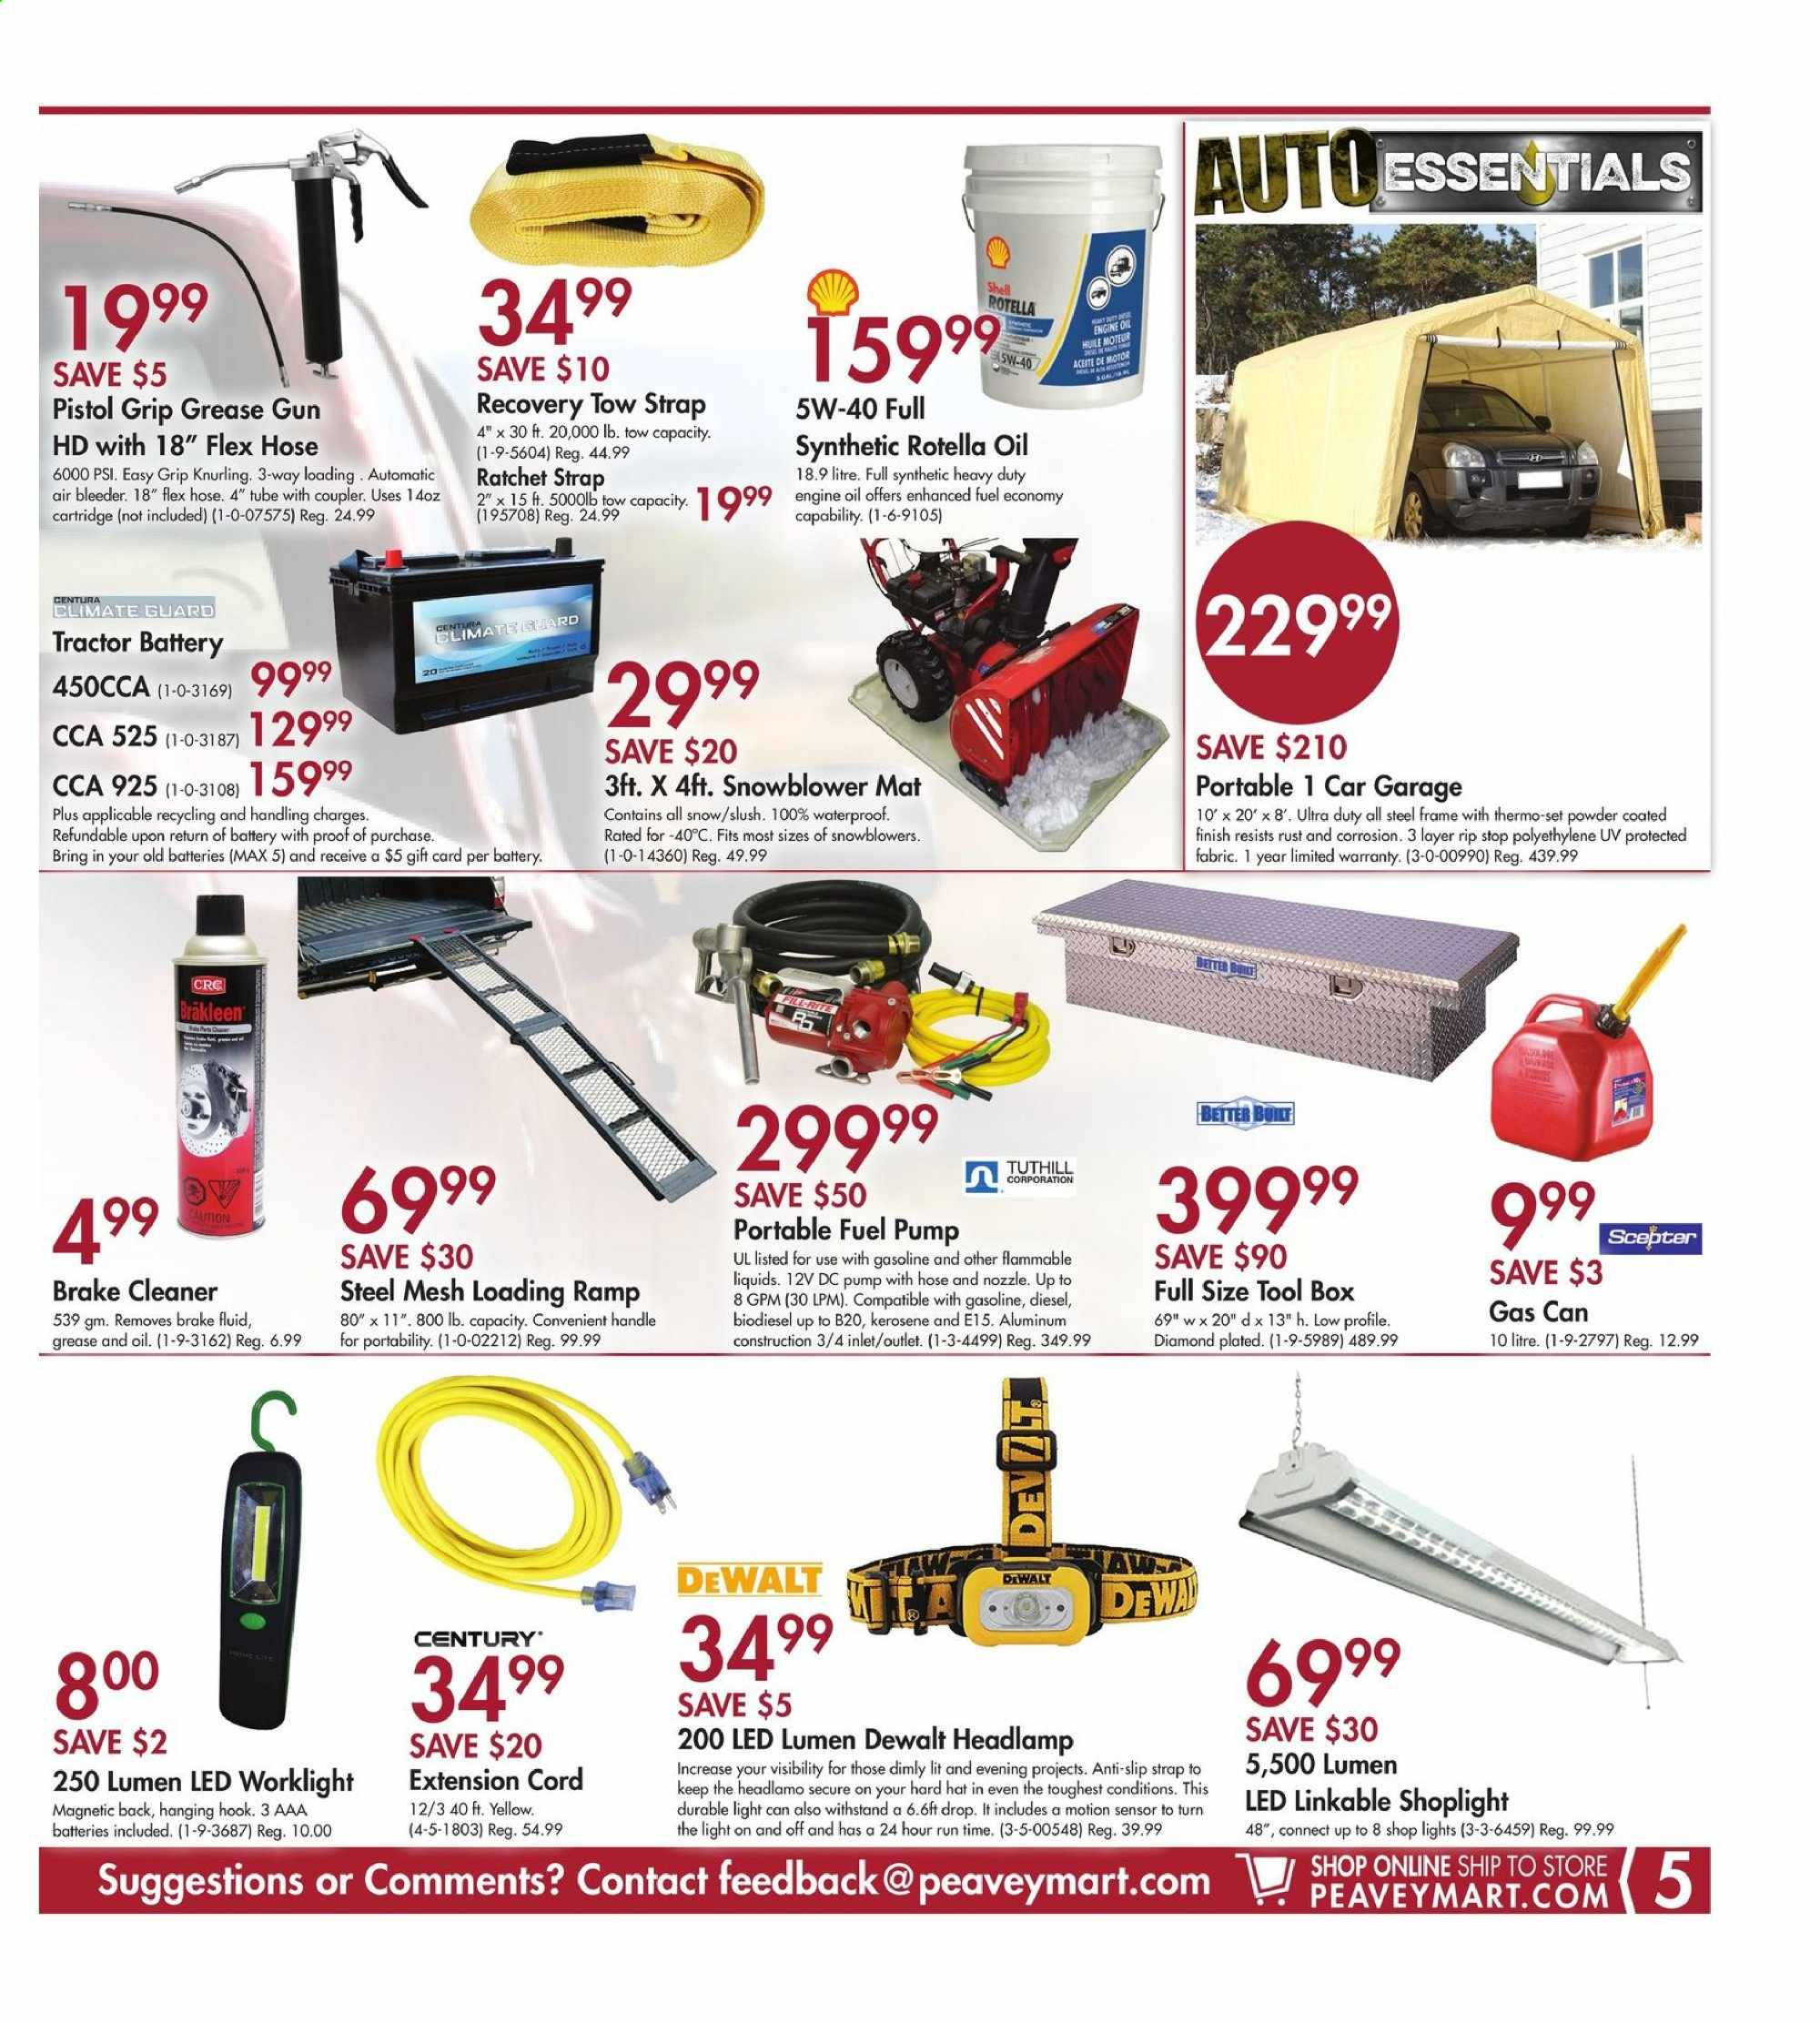 Peavey Mart Flyer March 05 2020 March 15 2020 Page 5 Canadian Flyers